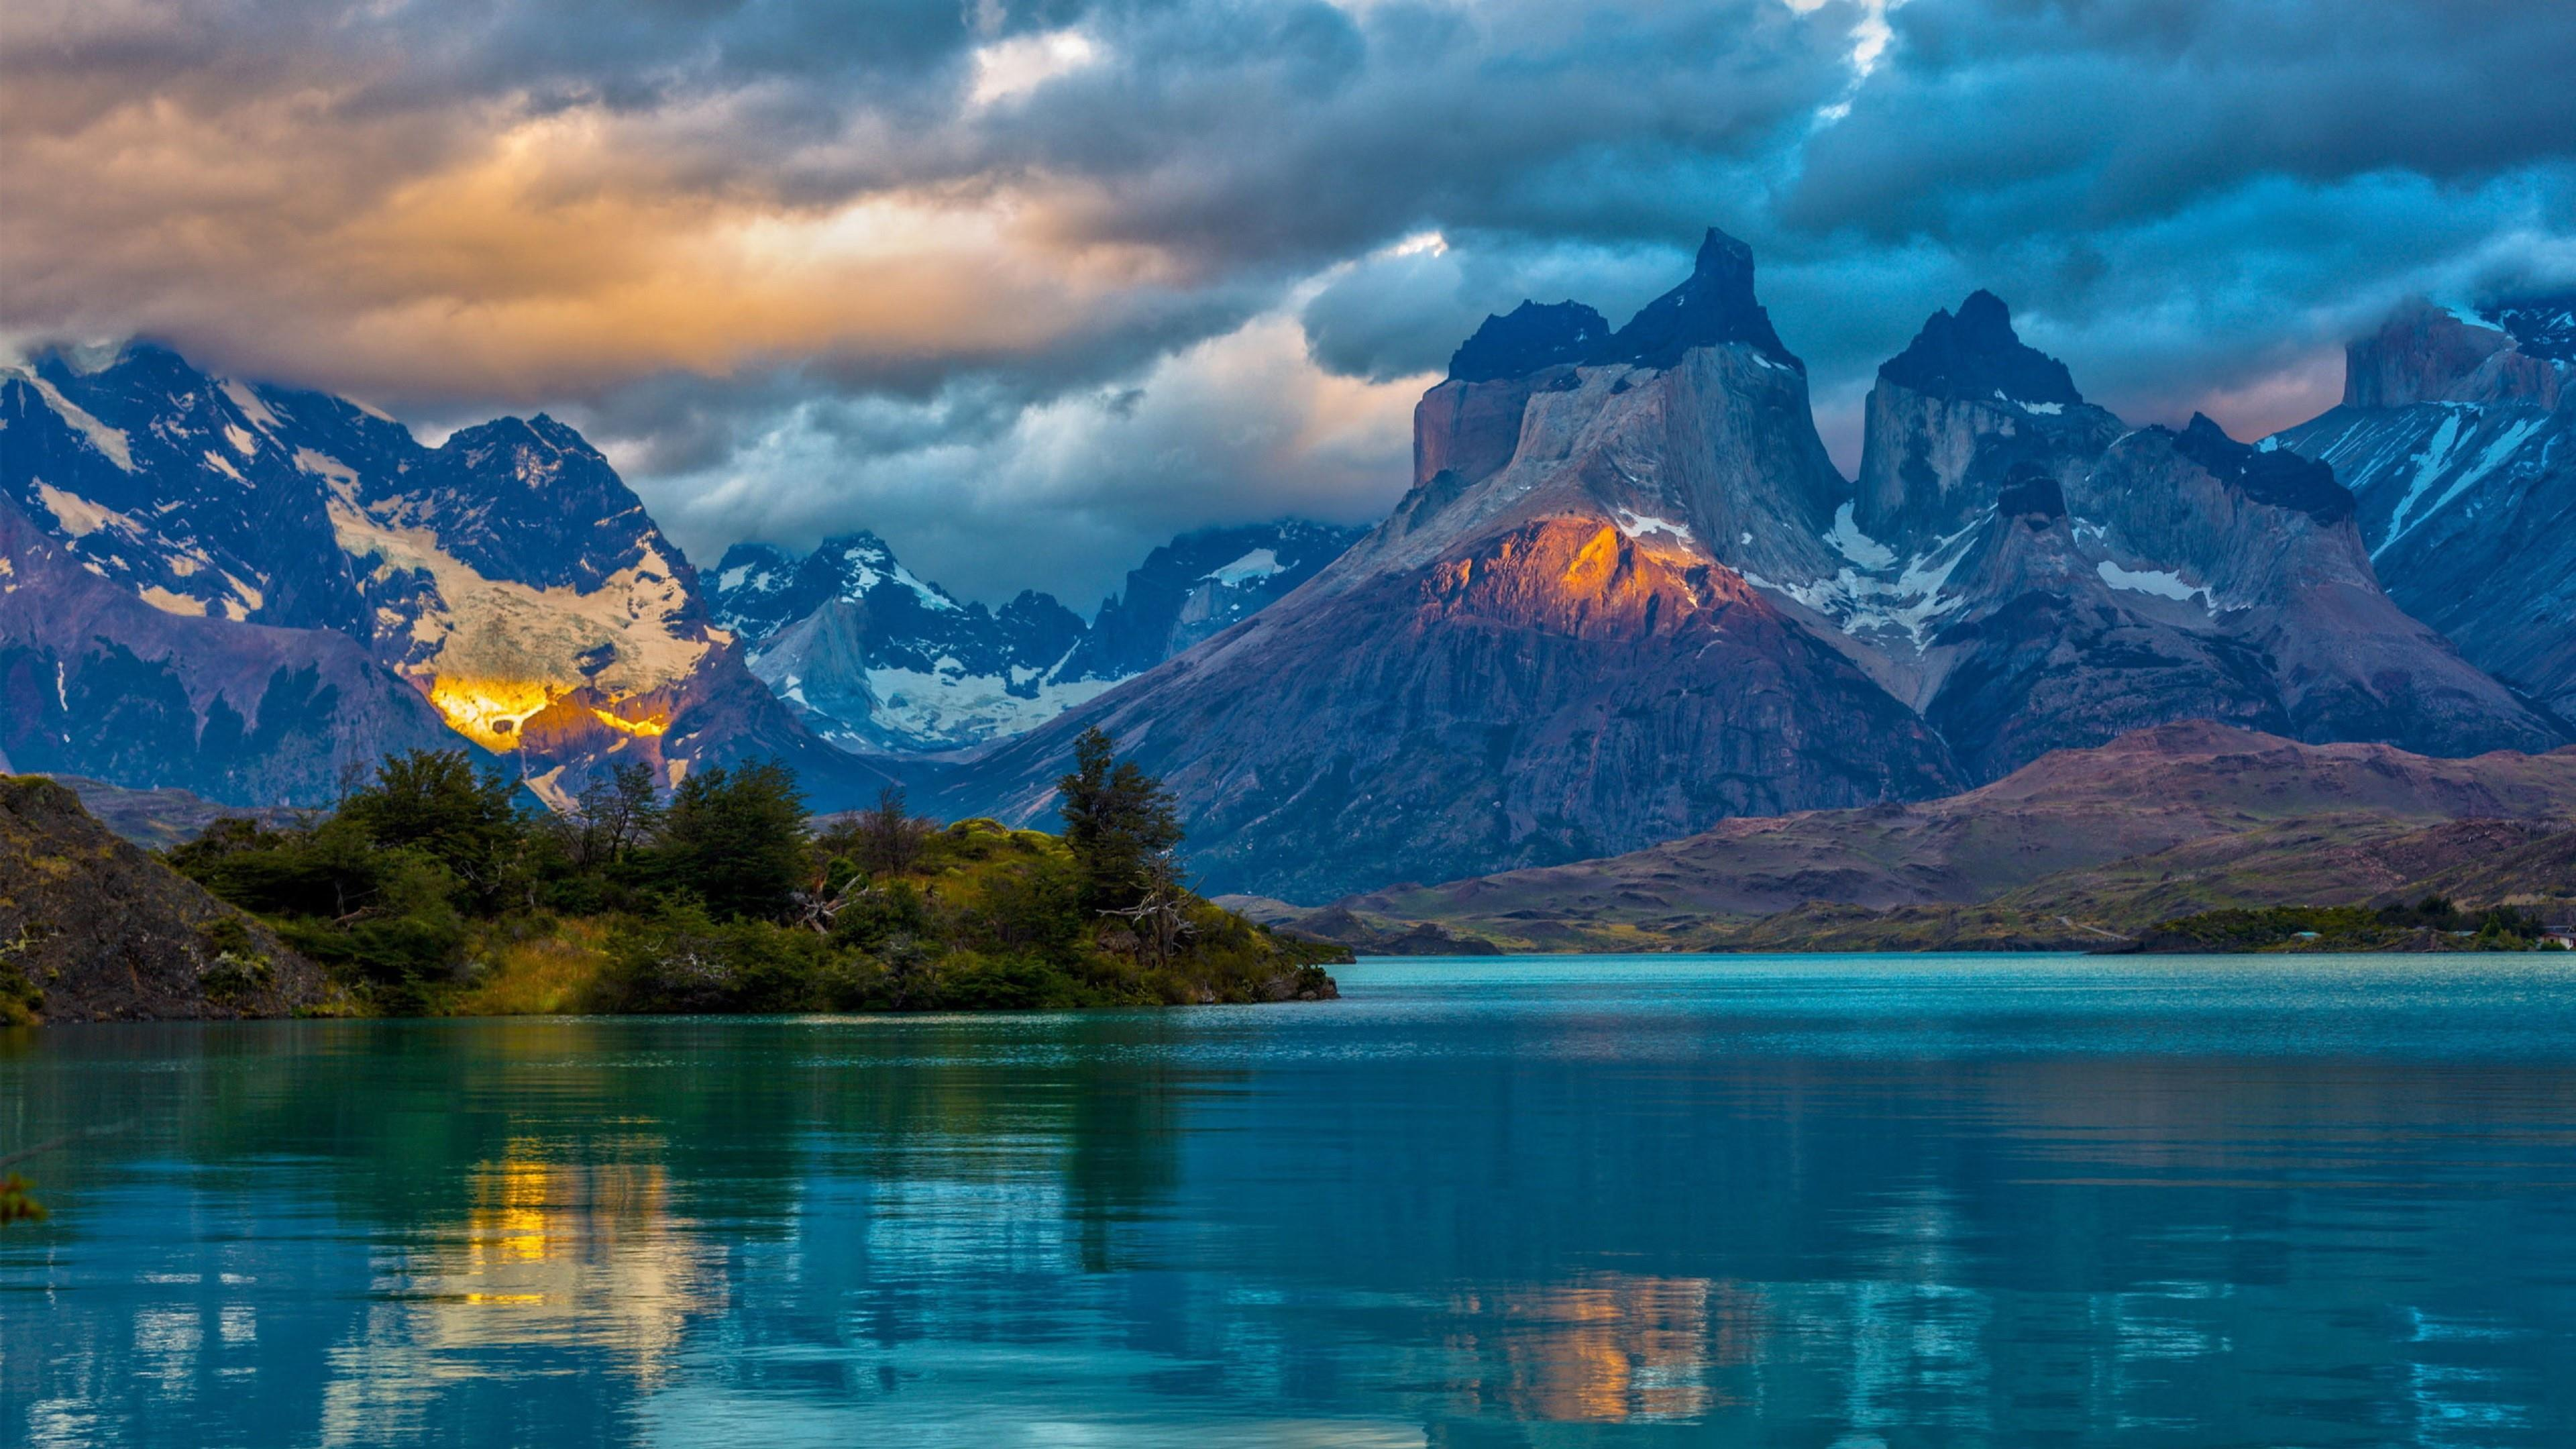 Torres Del Paine National Park Wallpapers - Wallpaper Cave